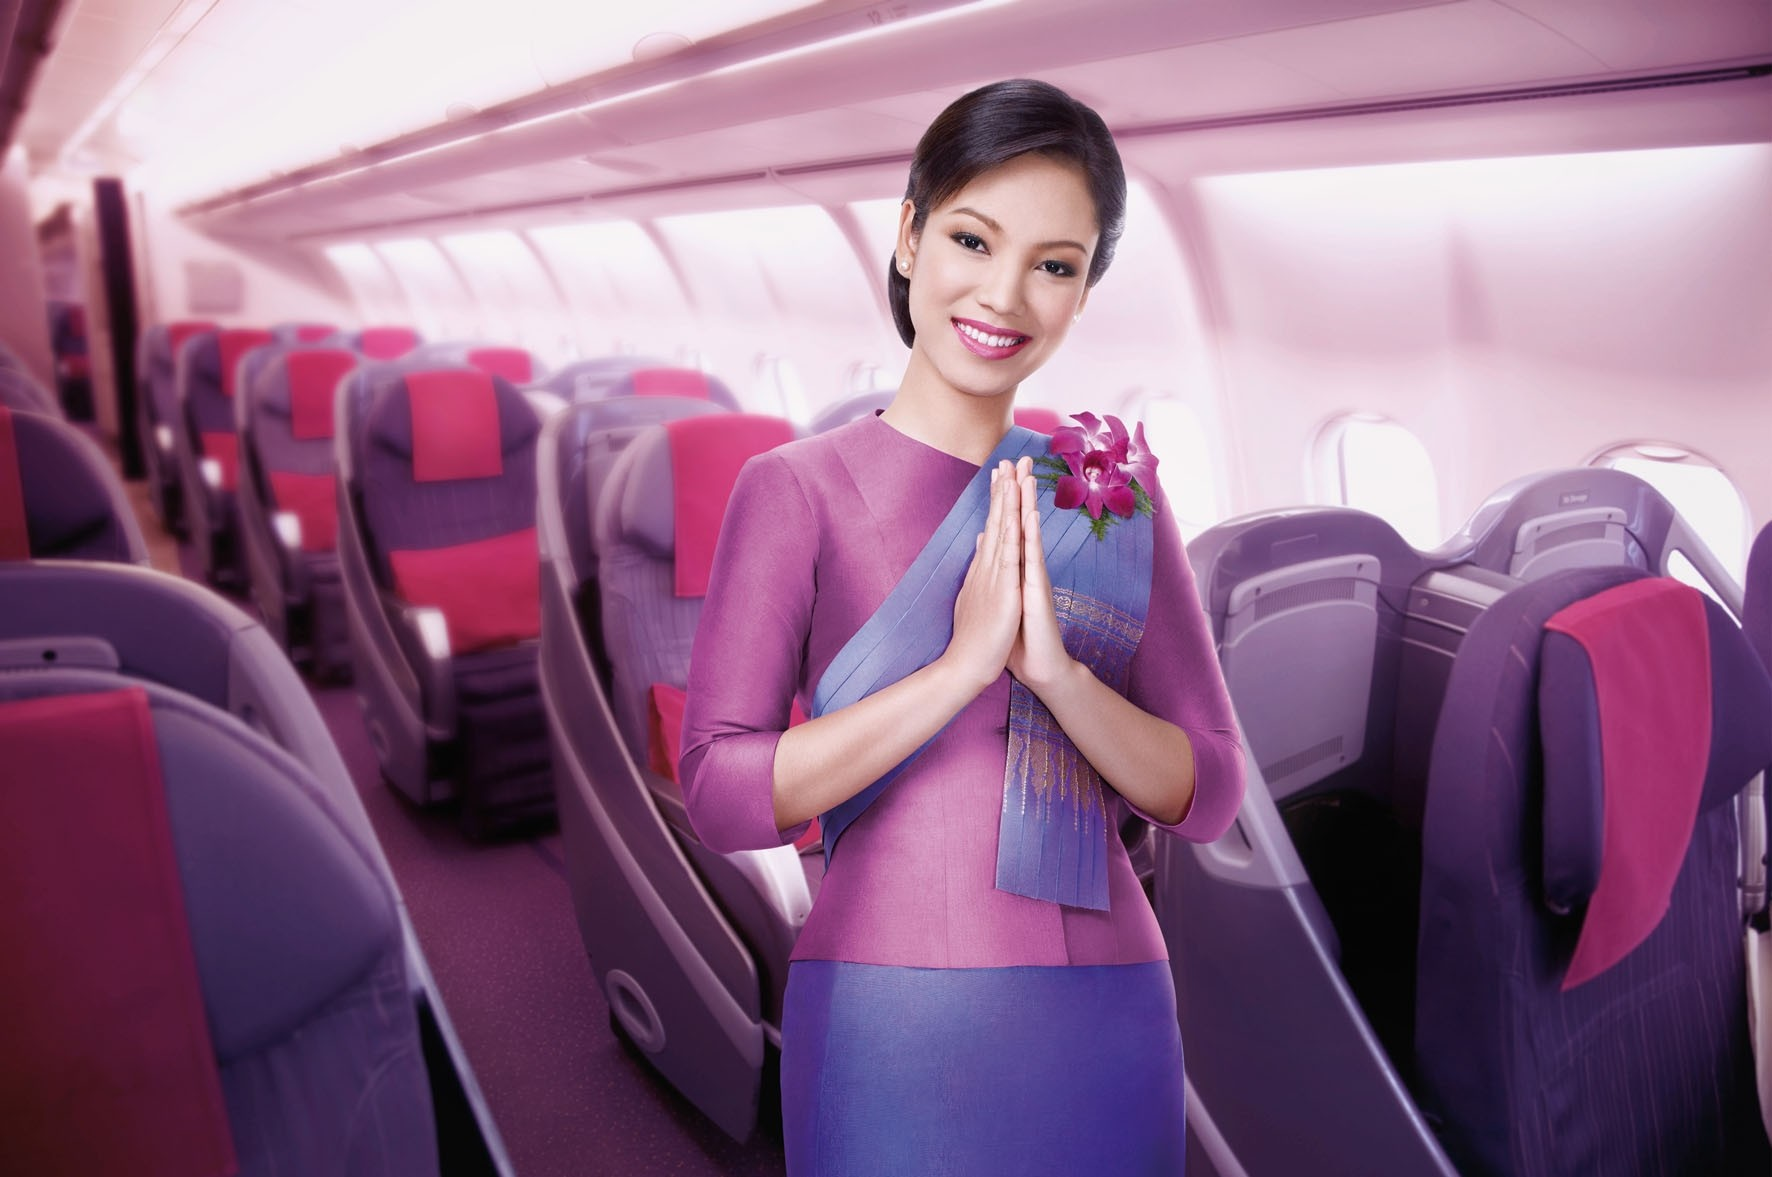 airline uniforms based on culture